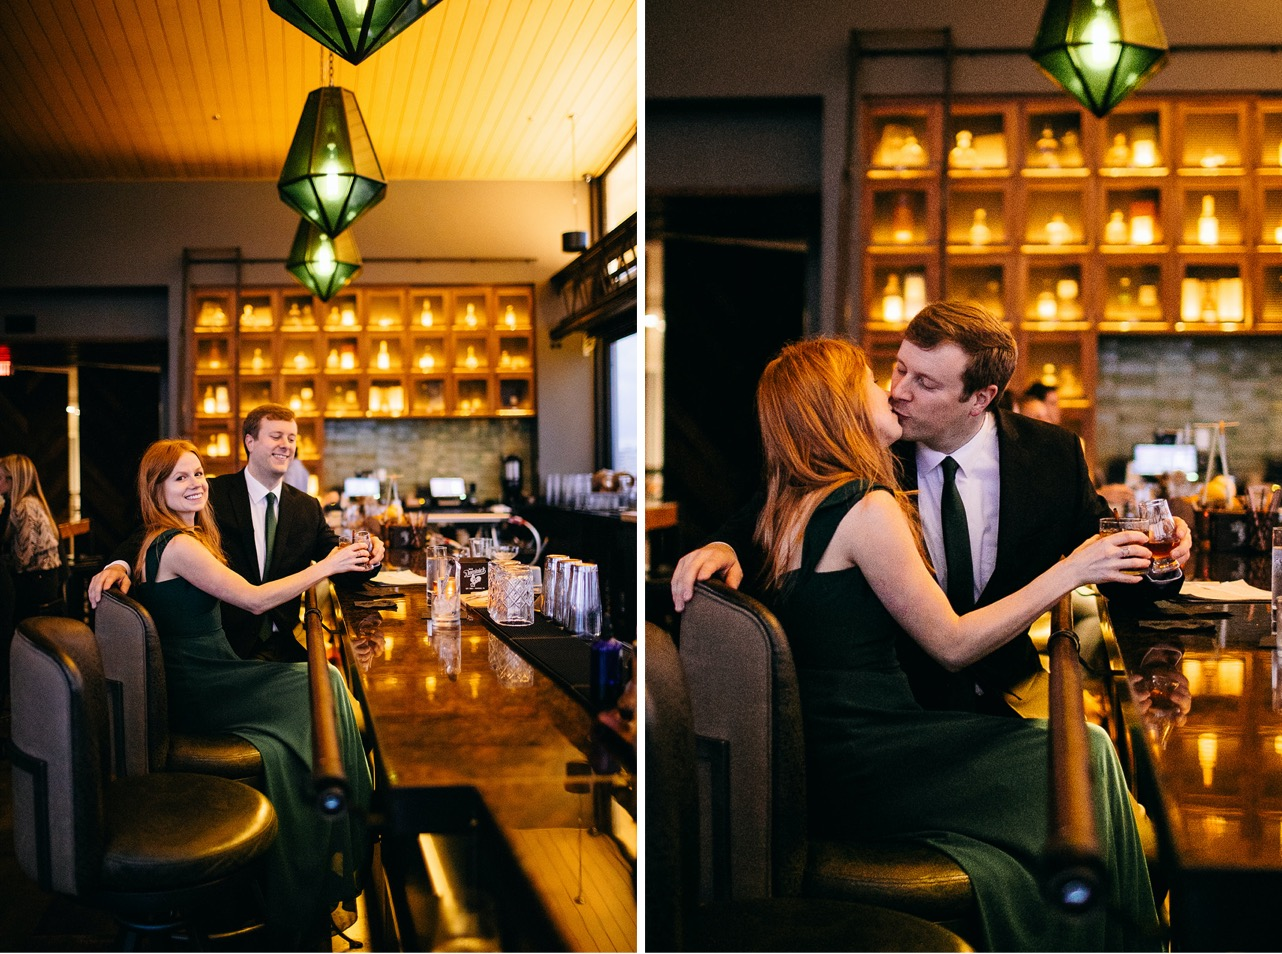 A couple drink together and laugh at a bar.